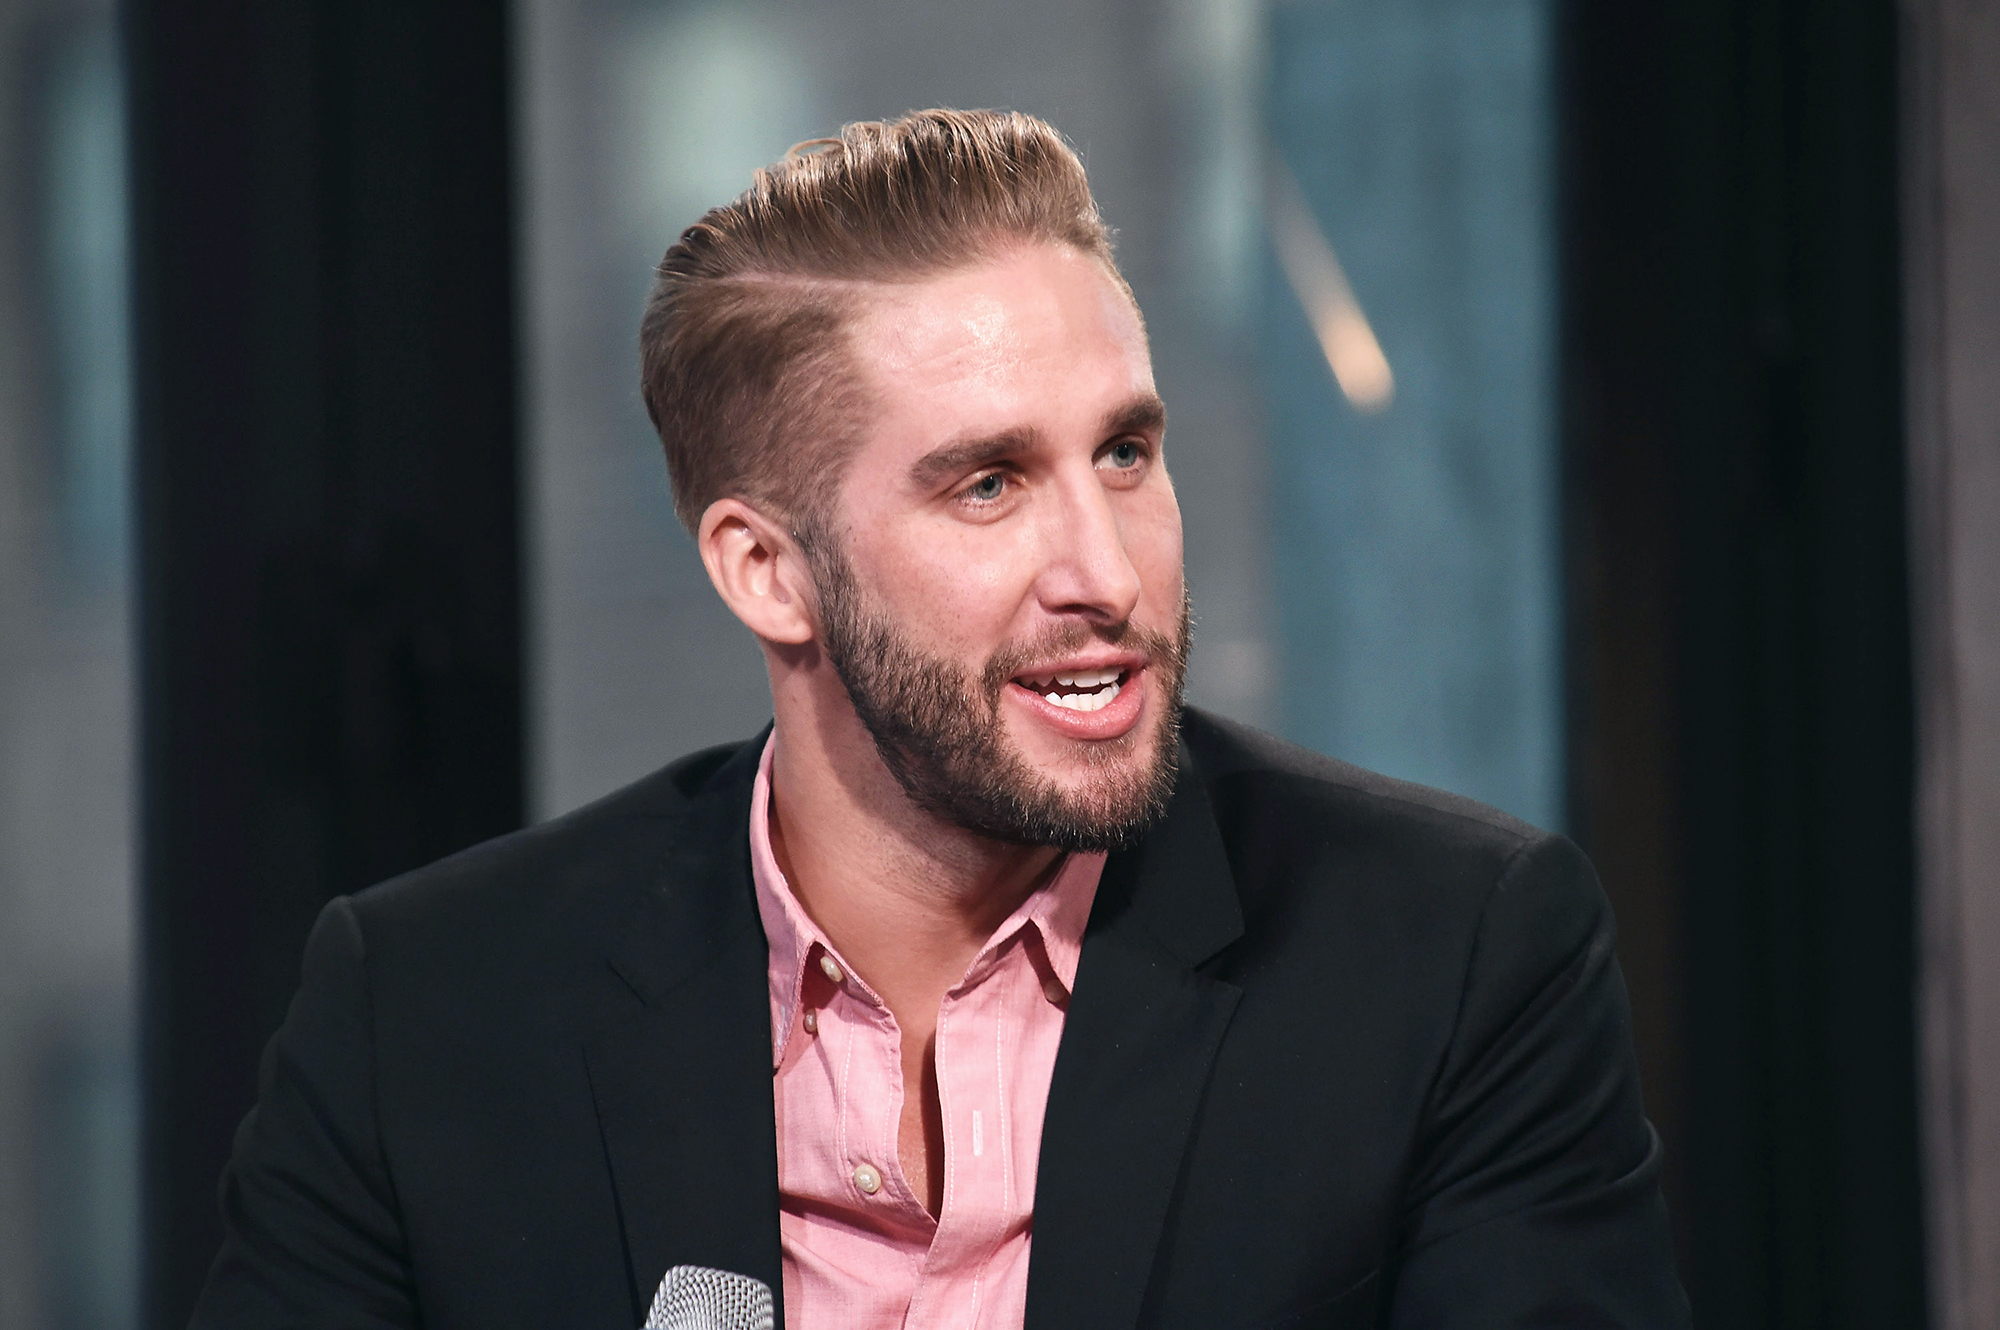 """Kaitlyn Bristowe and Shawn Booth: The Way They Were - Booth spoke out in an emotional Instagram post less than two weeks after news of their split. """"I just want to thank everyone who has been so supportive of my relationship with Kaitlyn over the years,"""" he wrote."""